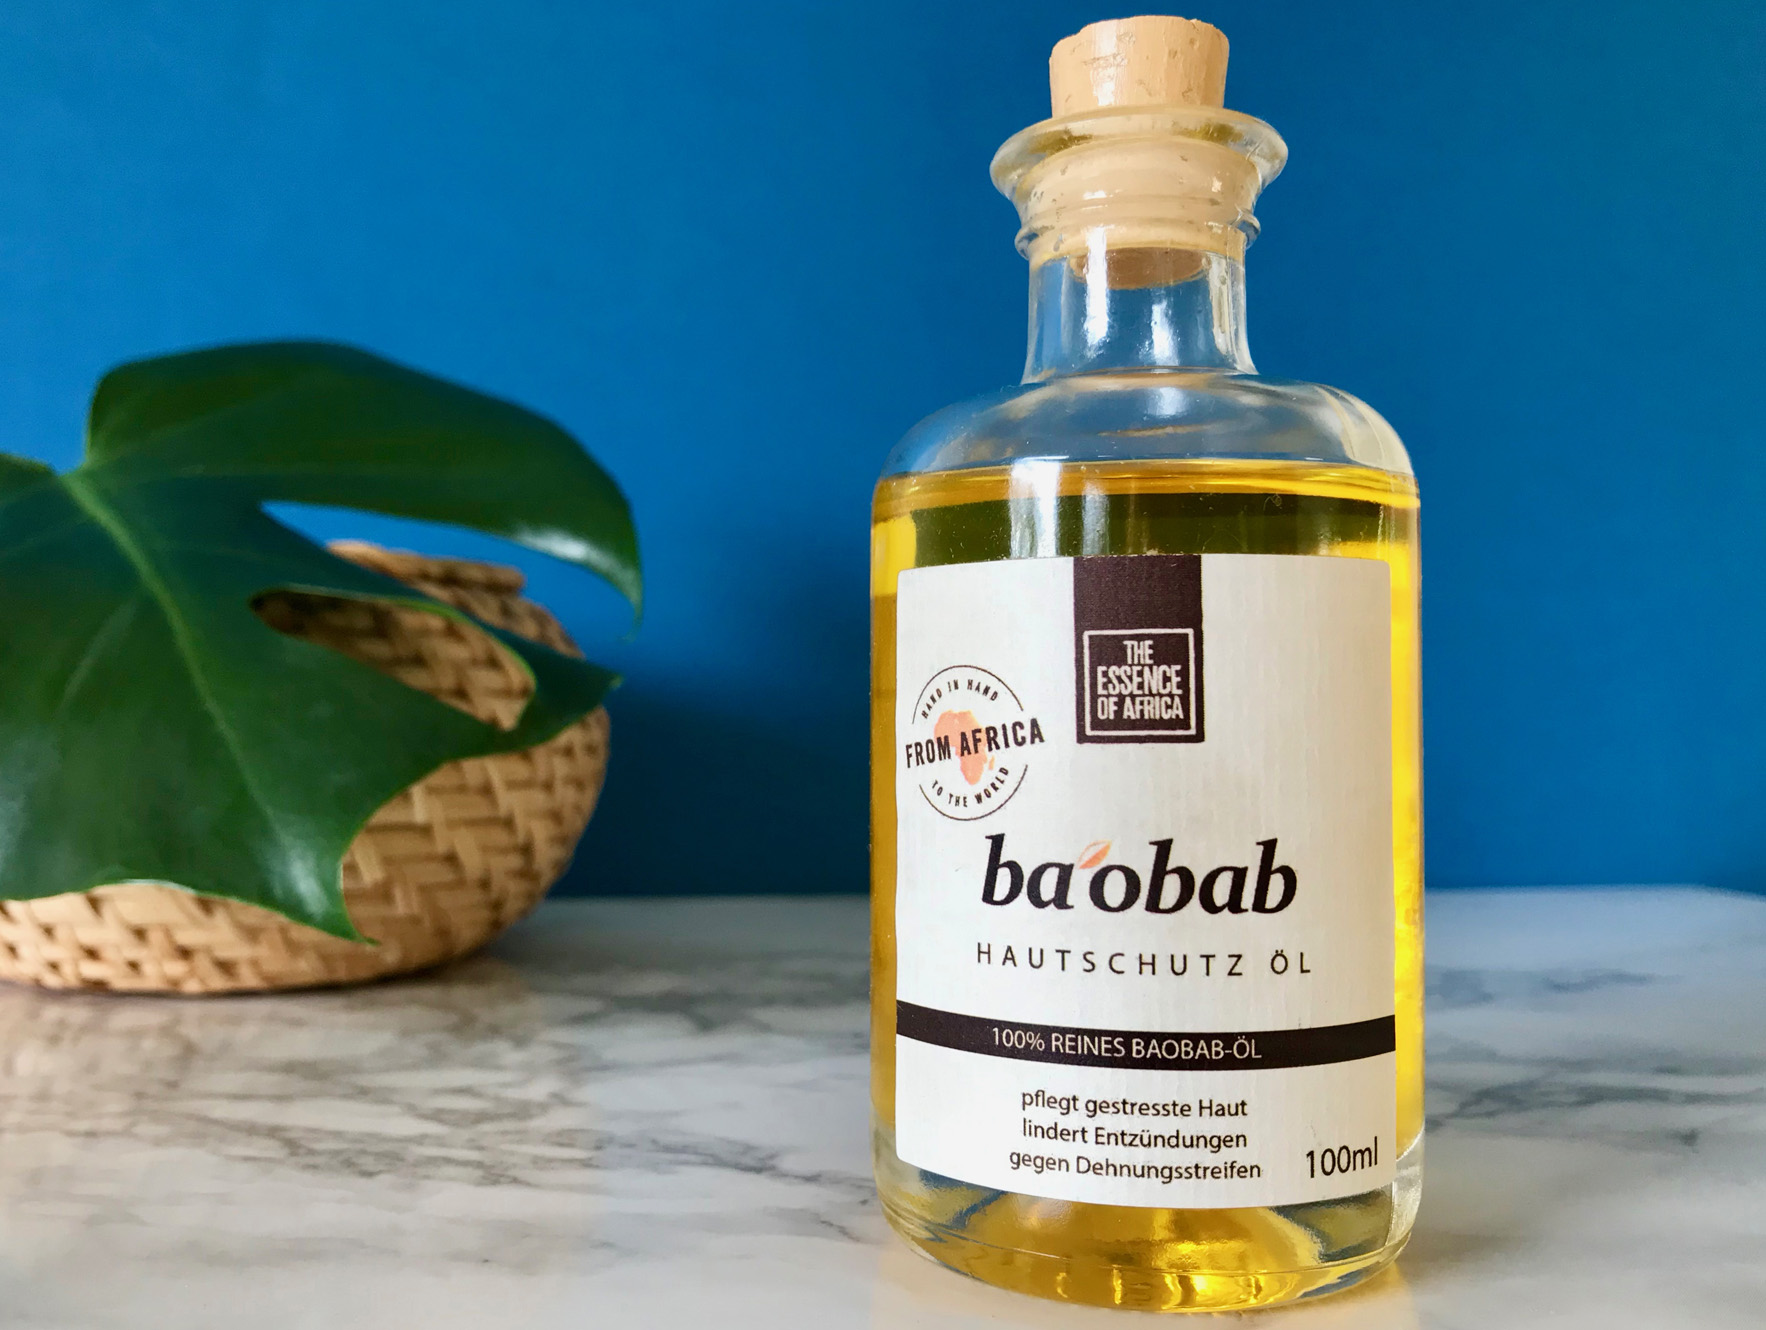 greenlooksgreat-baobab-oel-fairtrade